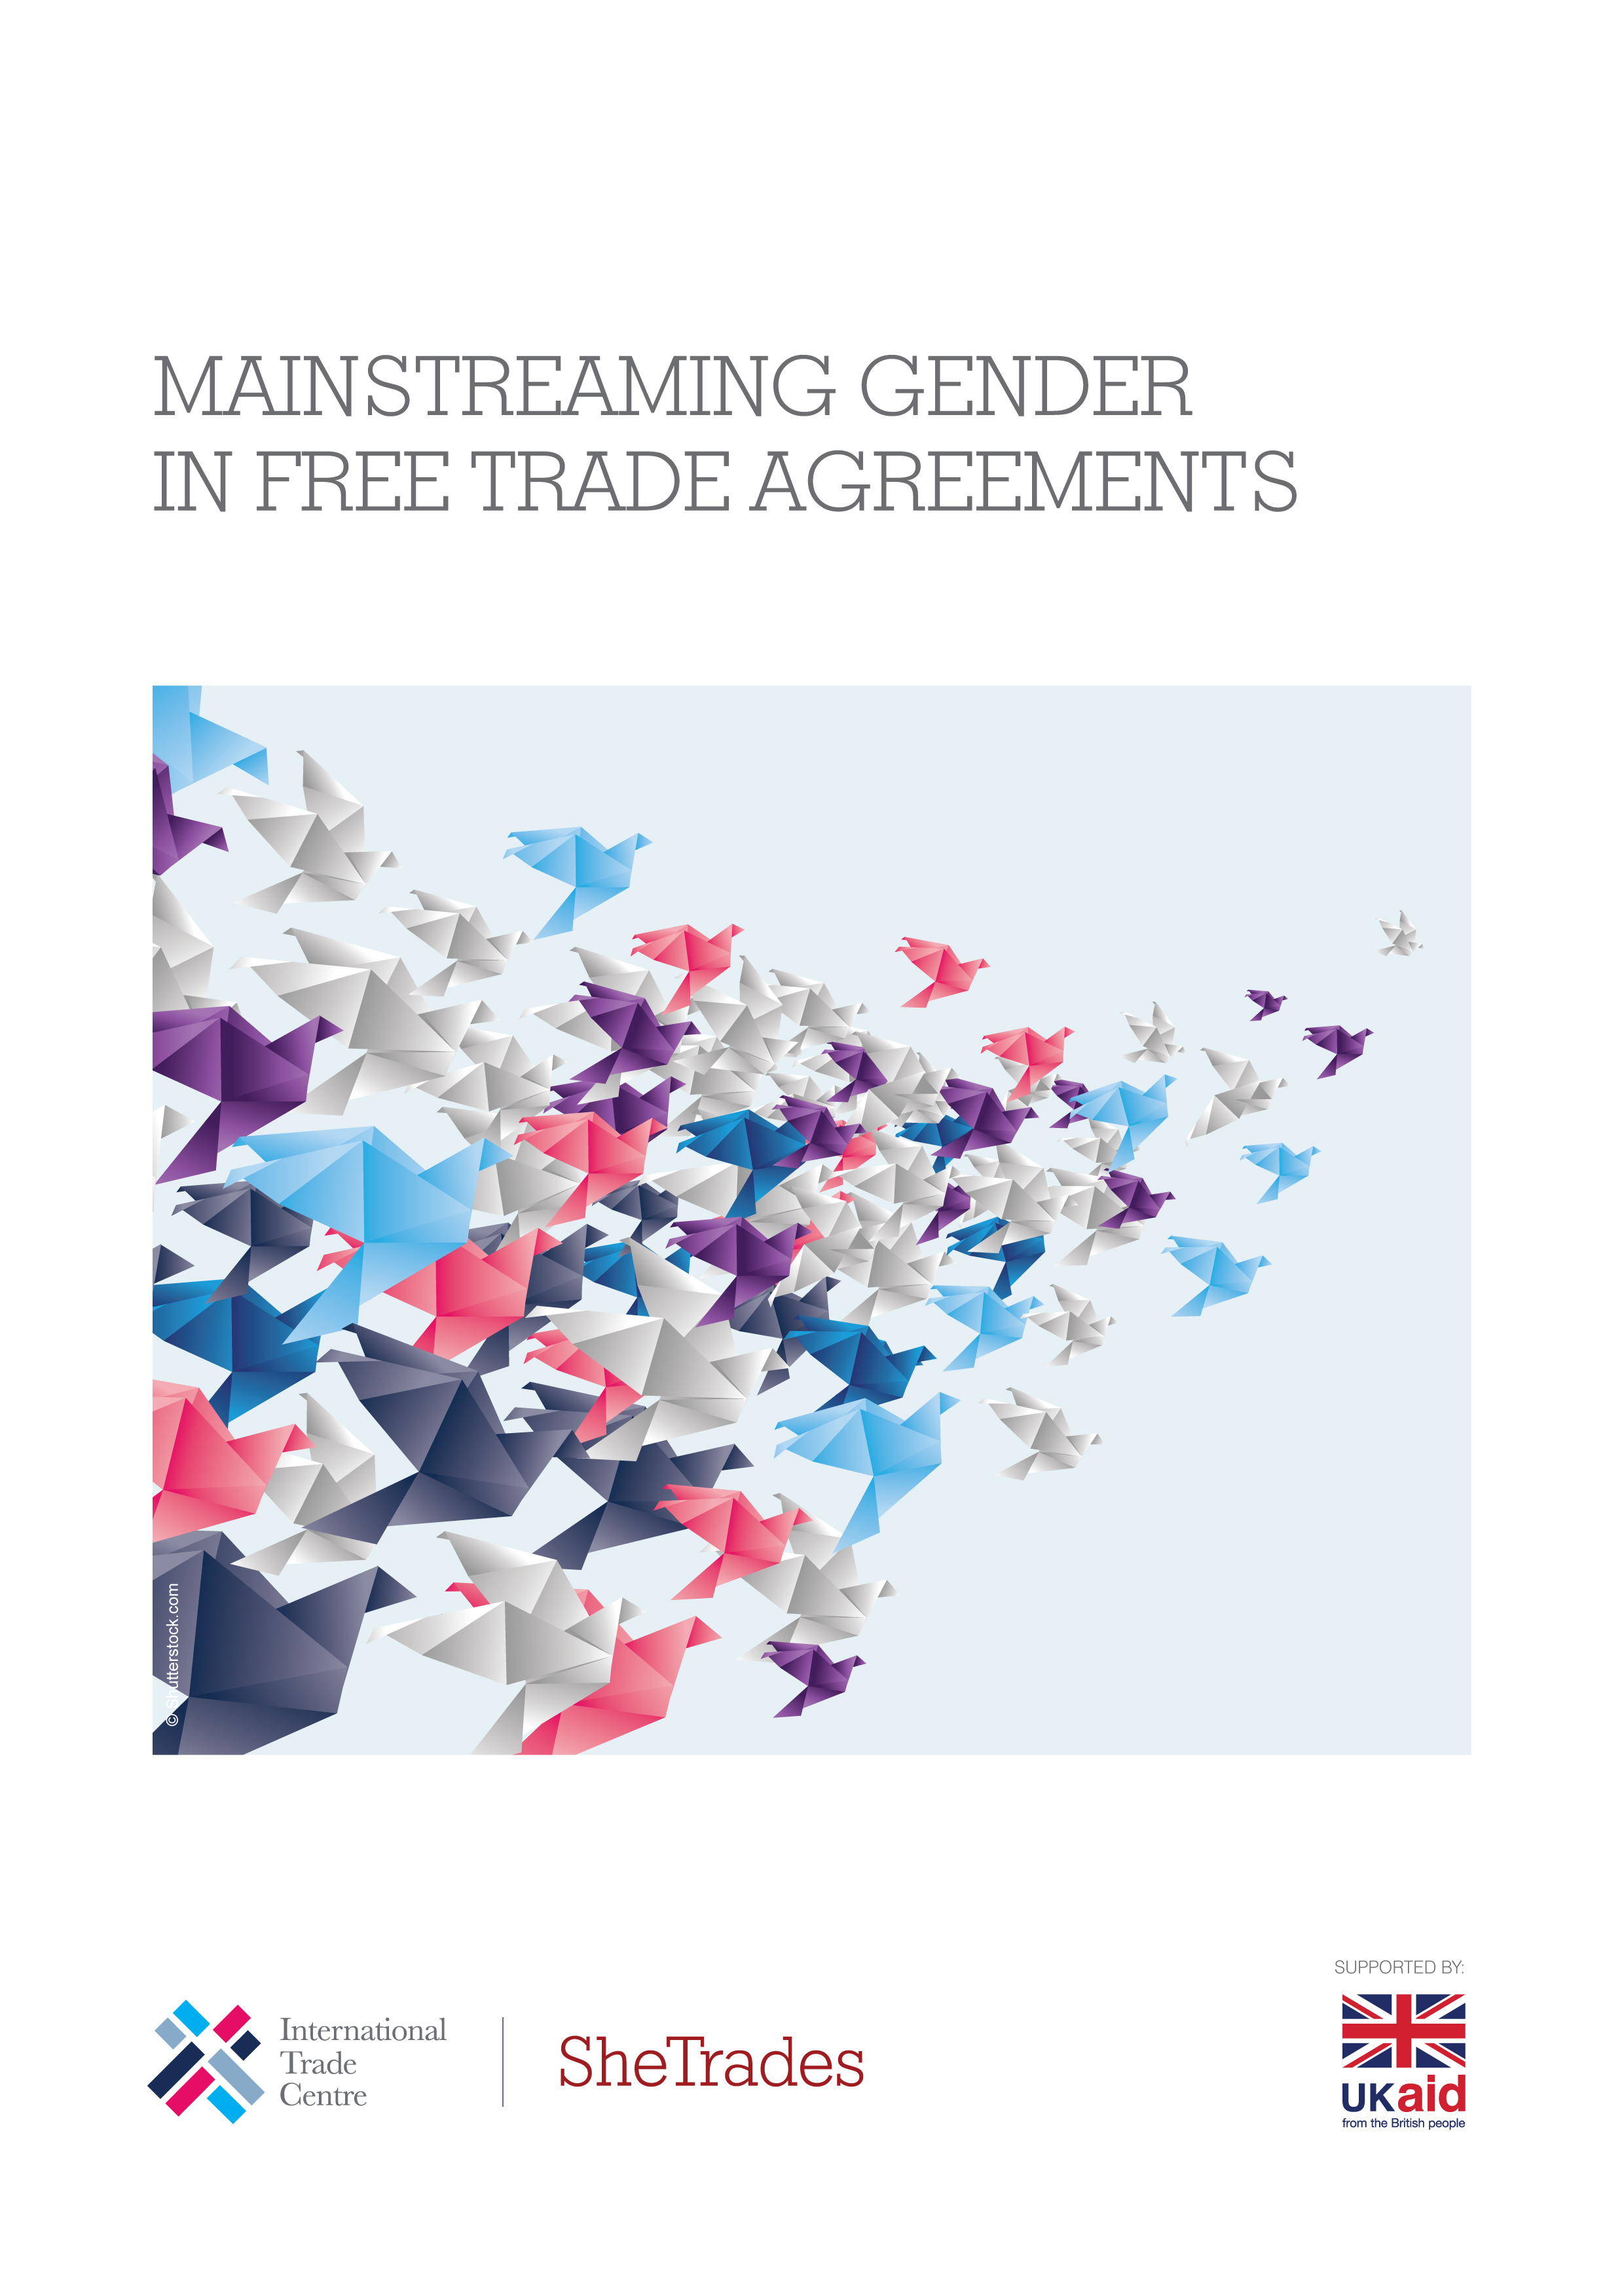 MAINSTREAMING GENDER IN FREE TRADE